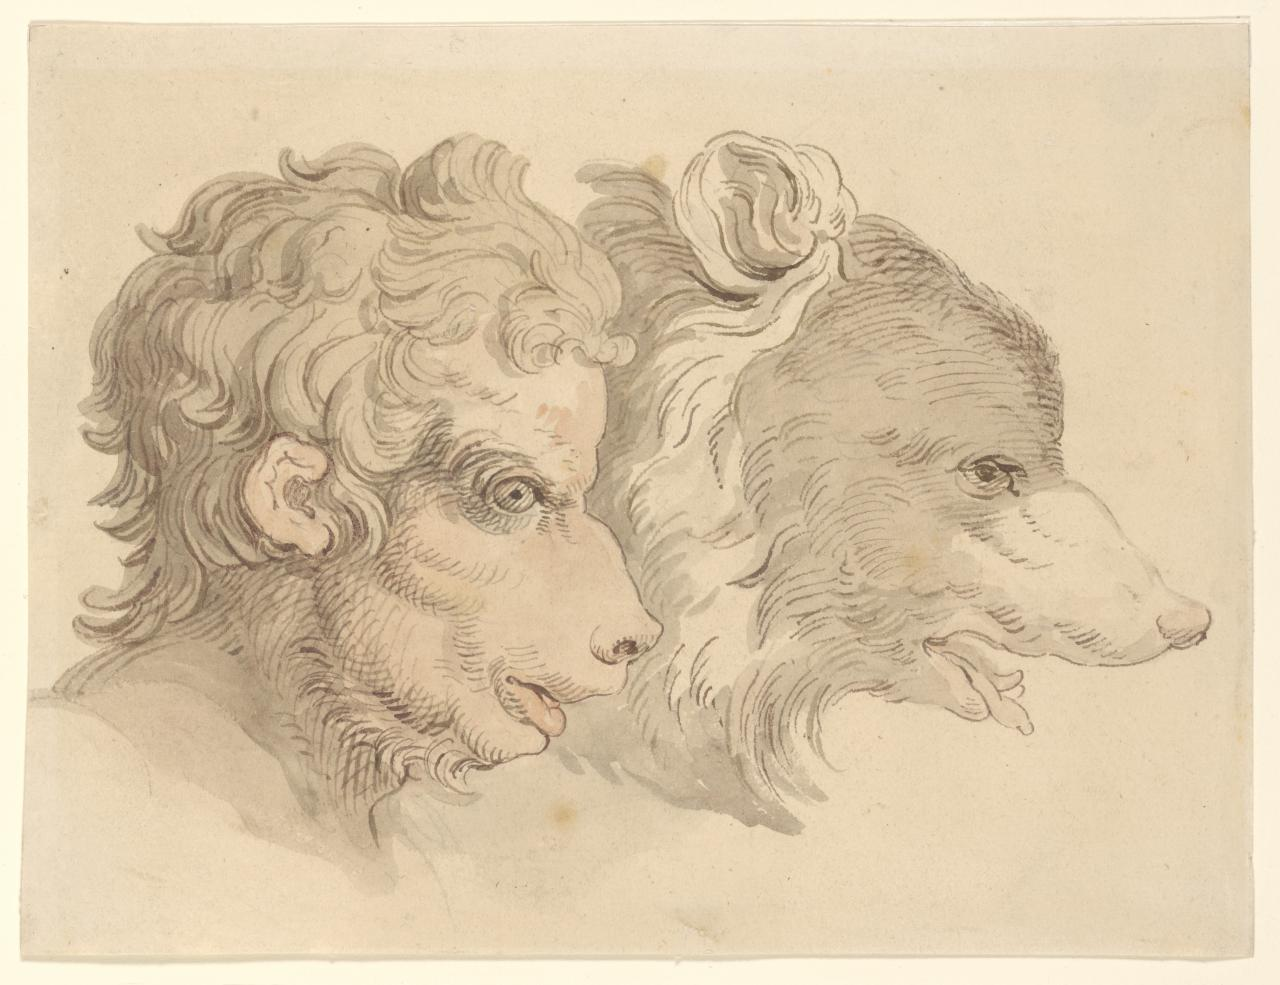 Grotesque heads (Human head and wolf's head)